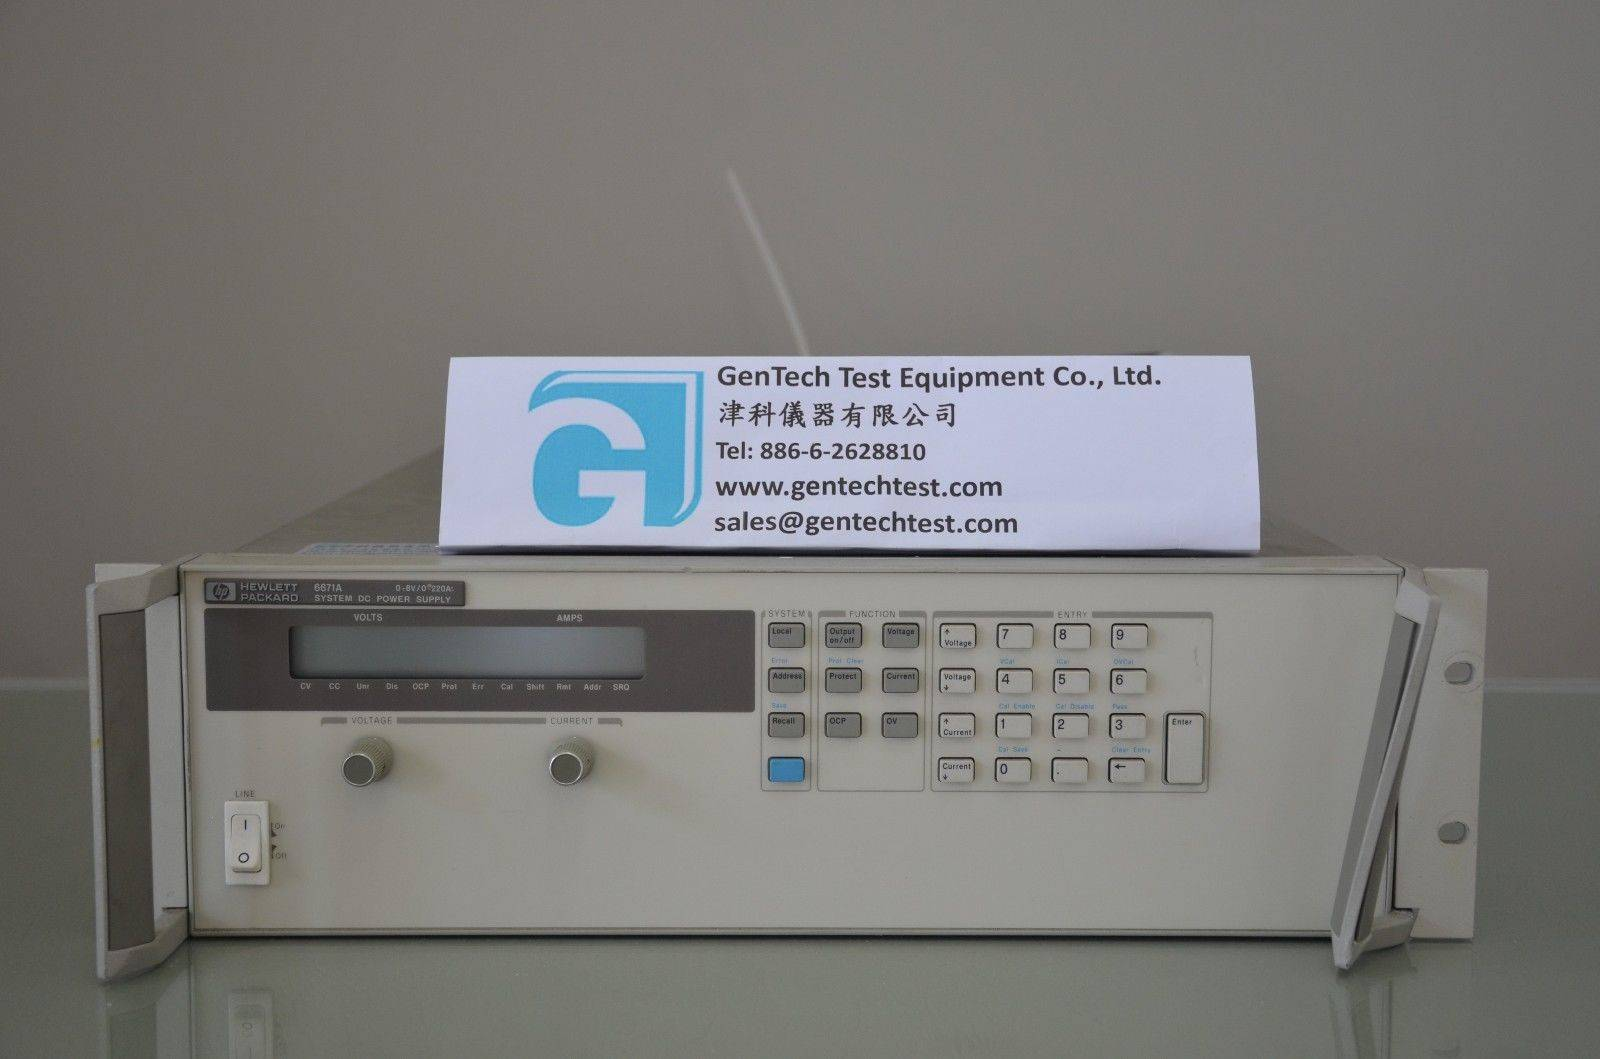 Agilent/HP 6671A 2000 Watt System Power Supply, 5V, 250A